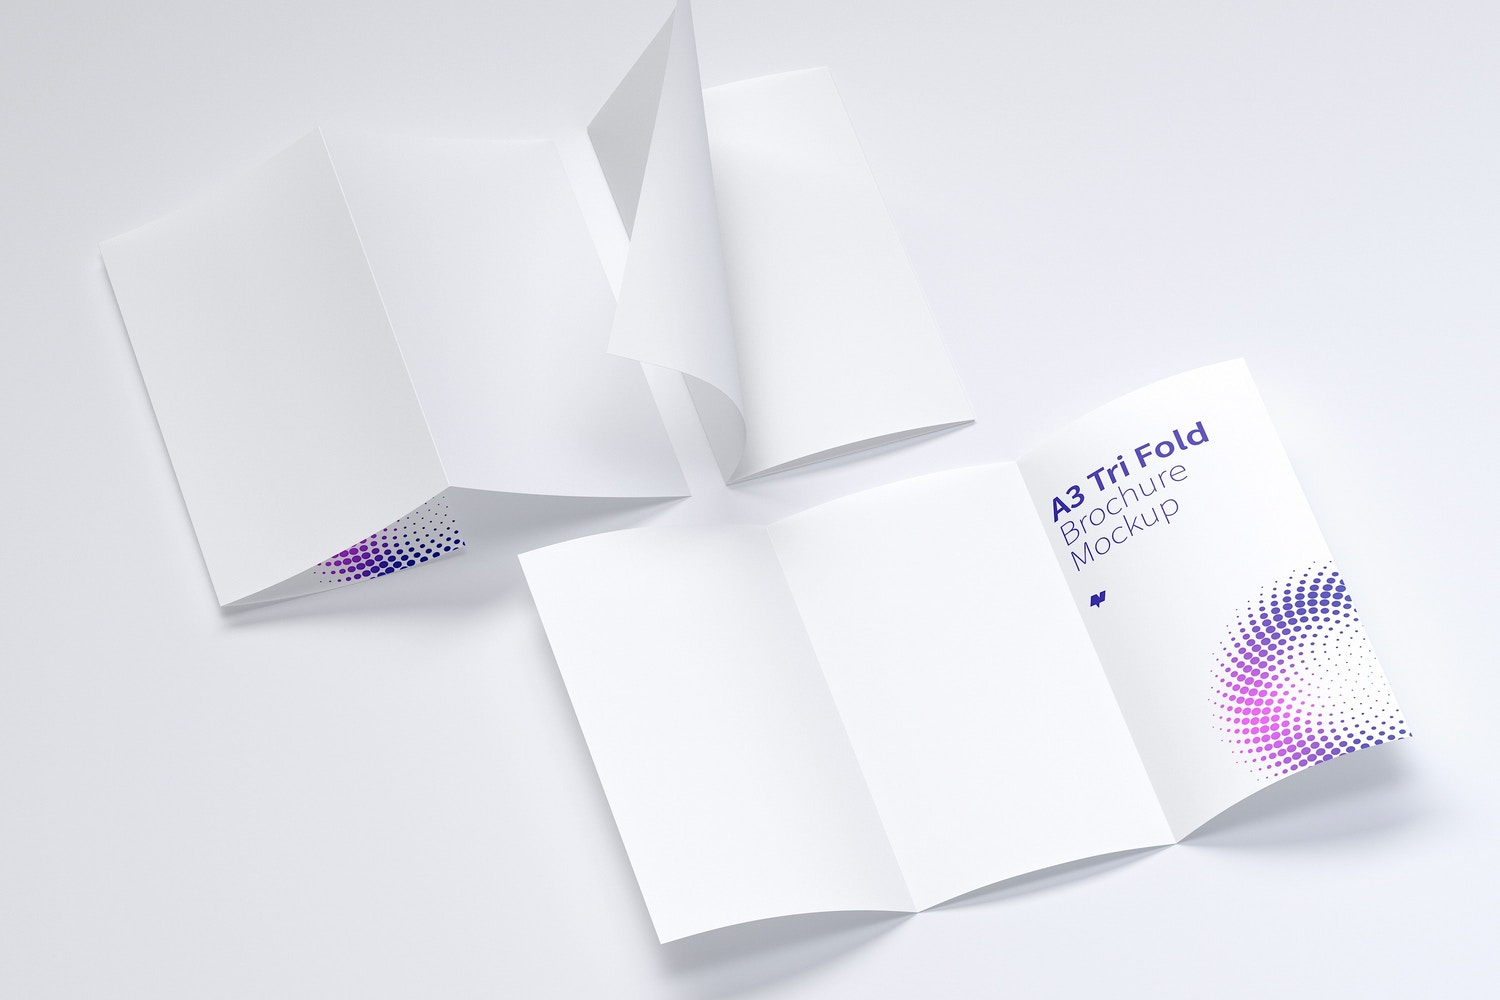 A3 Trifold Brochure Mockup 03 by Original Mockups on Original Mockups